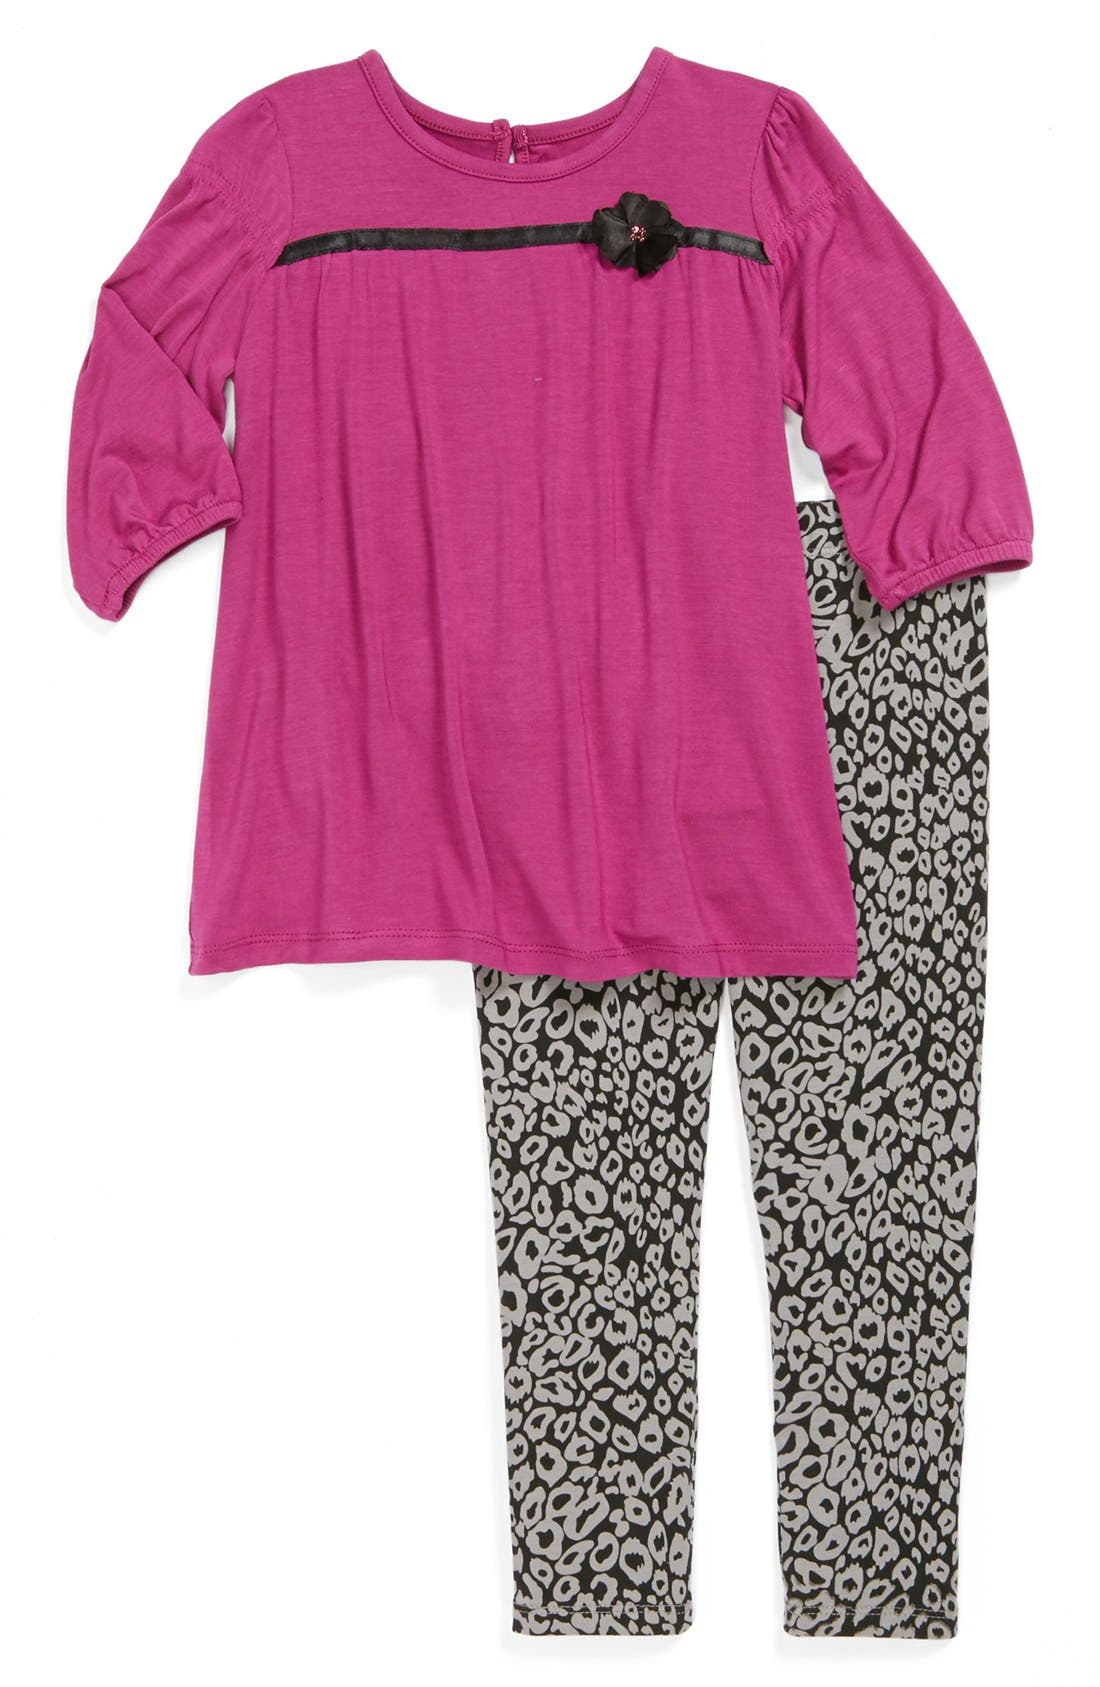 Main Image - Nicole Miller Tunic & Print Leggings (Toddler Girls)